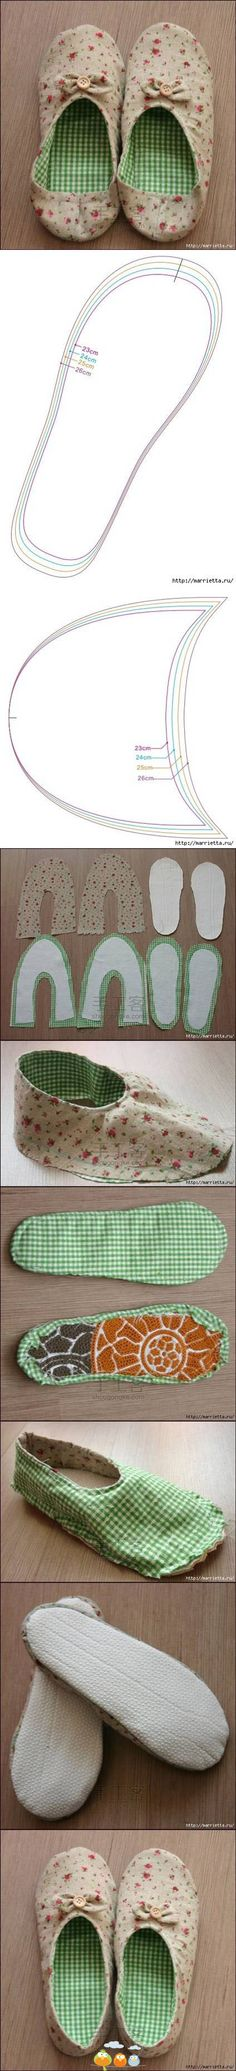 handmade slippers, this looks pretty simple